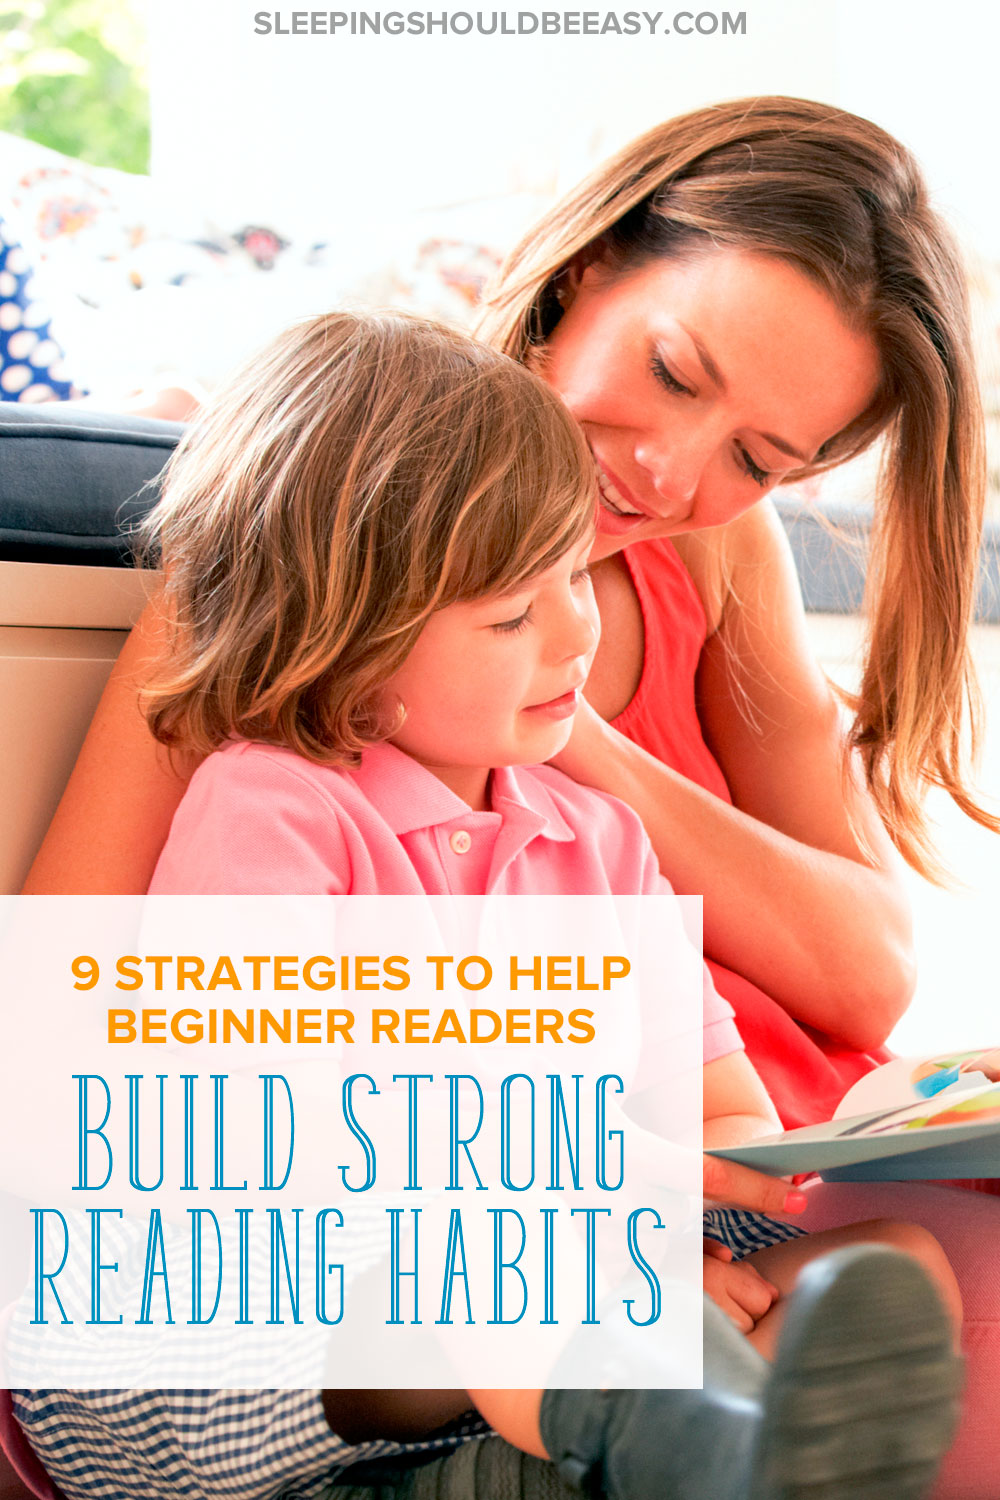 Want to encourage a love of reading in your child? Help your beginner reader develop strong reading habits with these 9 strategies.